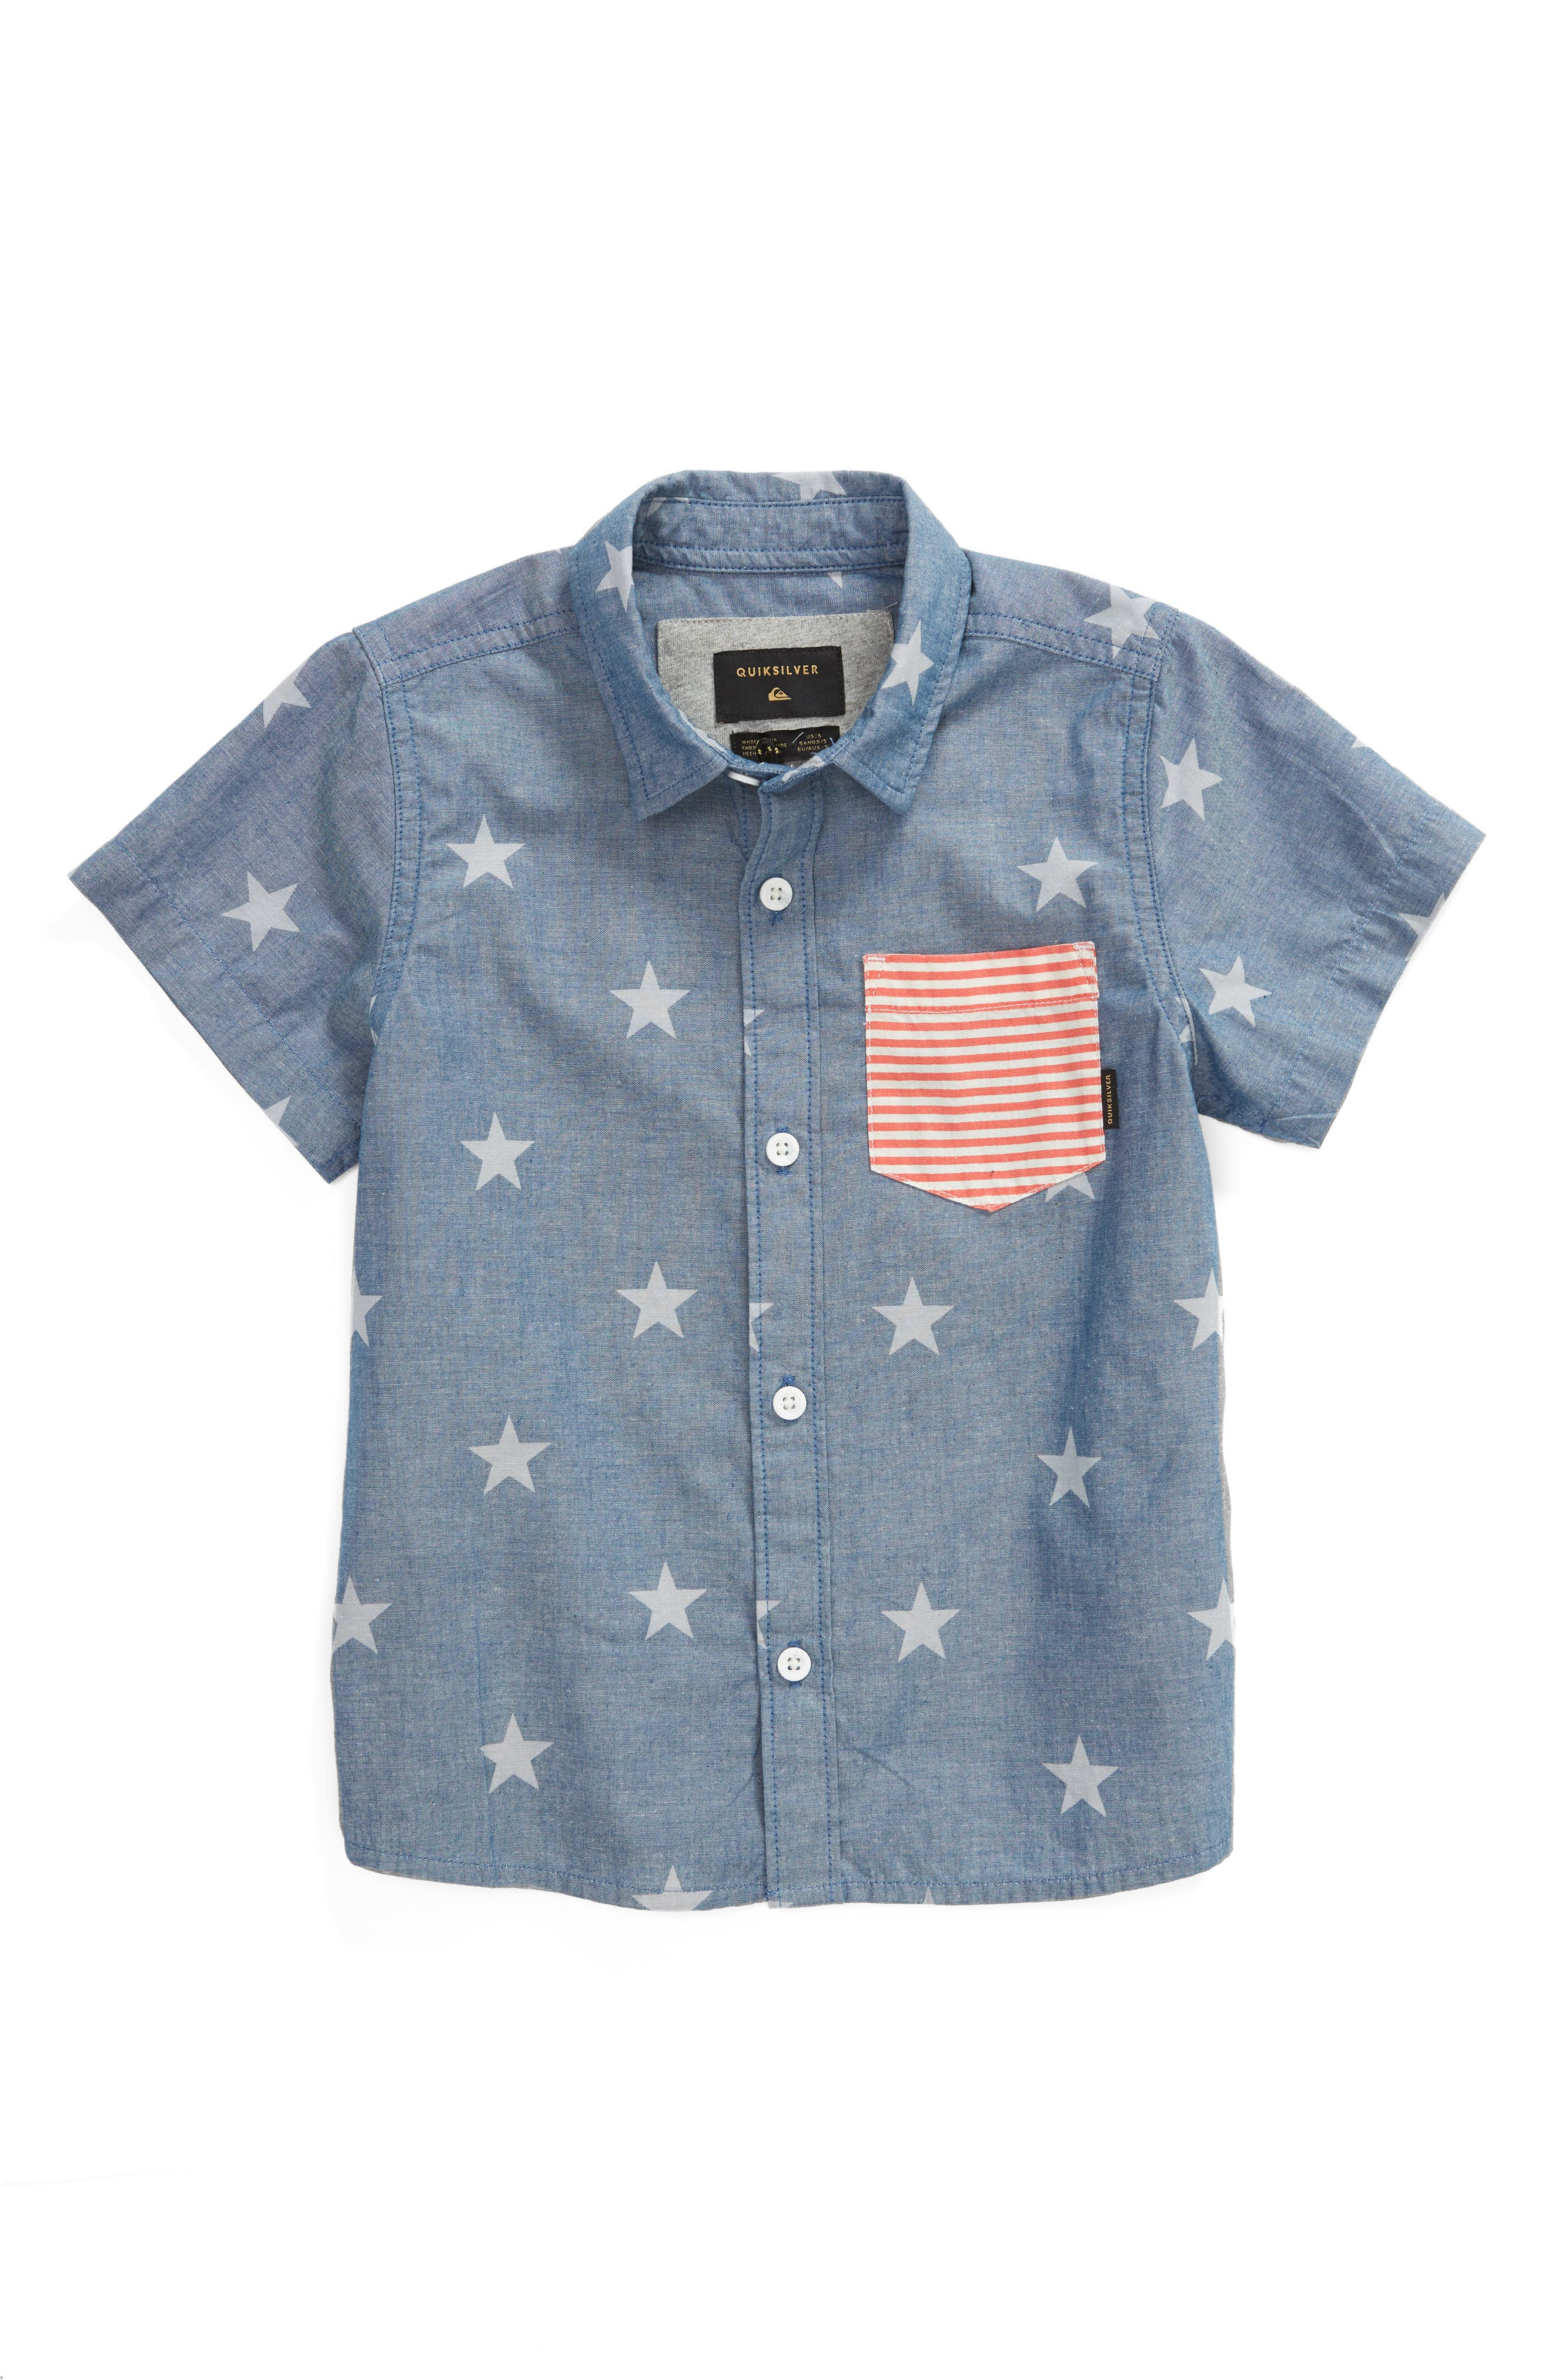 Quiksilver 4th of July Woven Shirt (Toddler Boys & Little Boys)